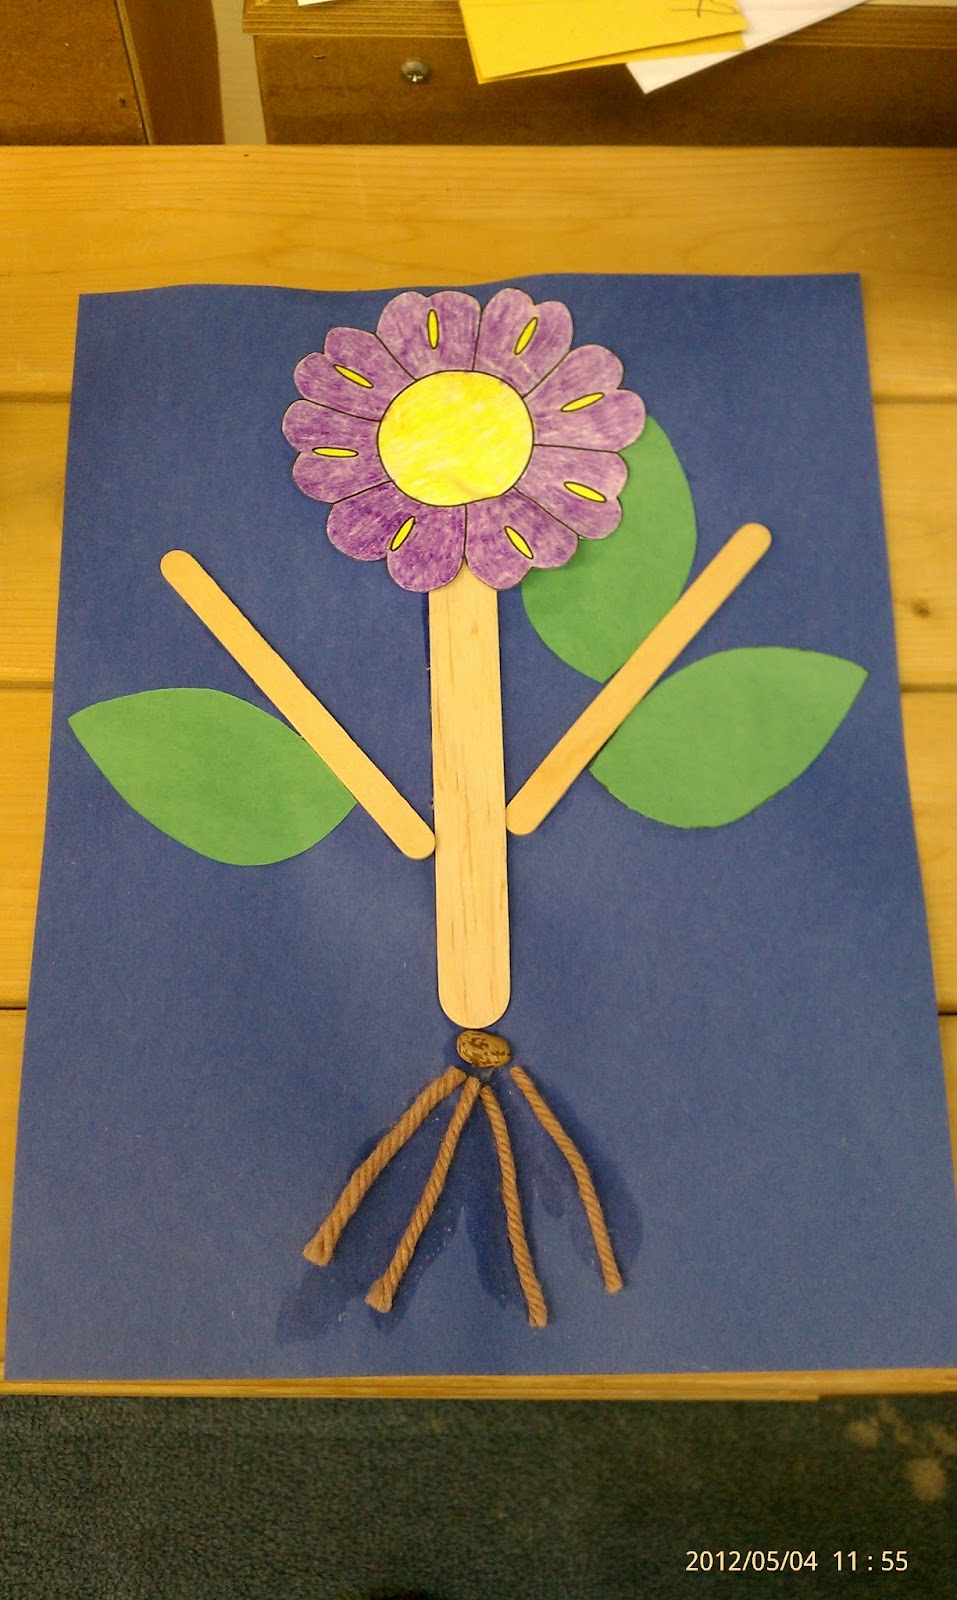 Plants arts and crafts - This Is My Example We Used A Bean Seed As Our Seed Yarn For The Roots Tongue Depressors For The Stem Popsicle Sticks For The Branches Paper Cut Outs